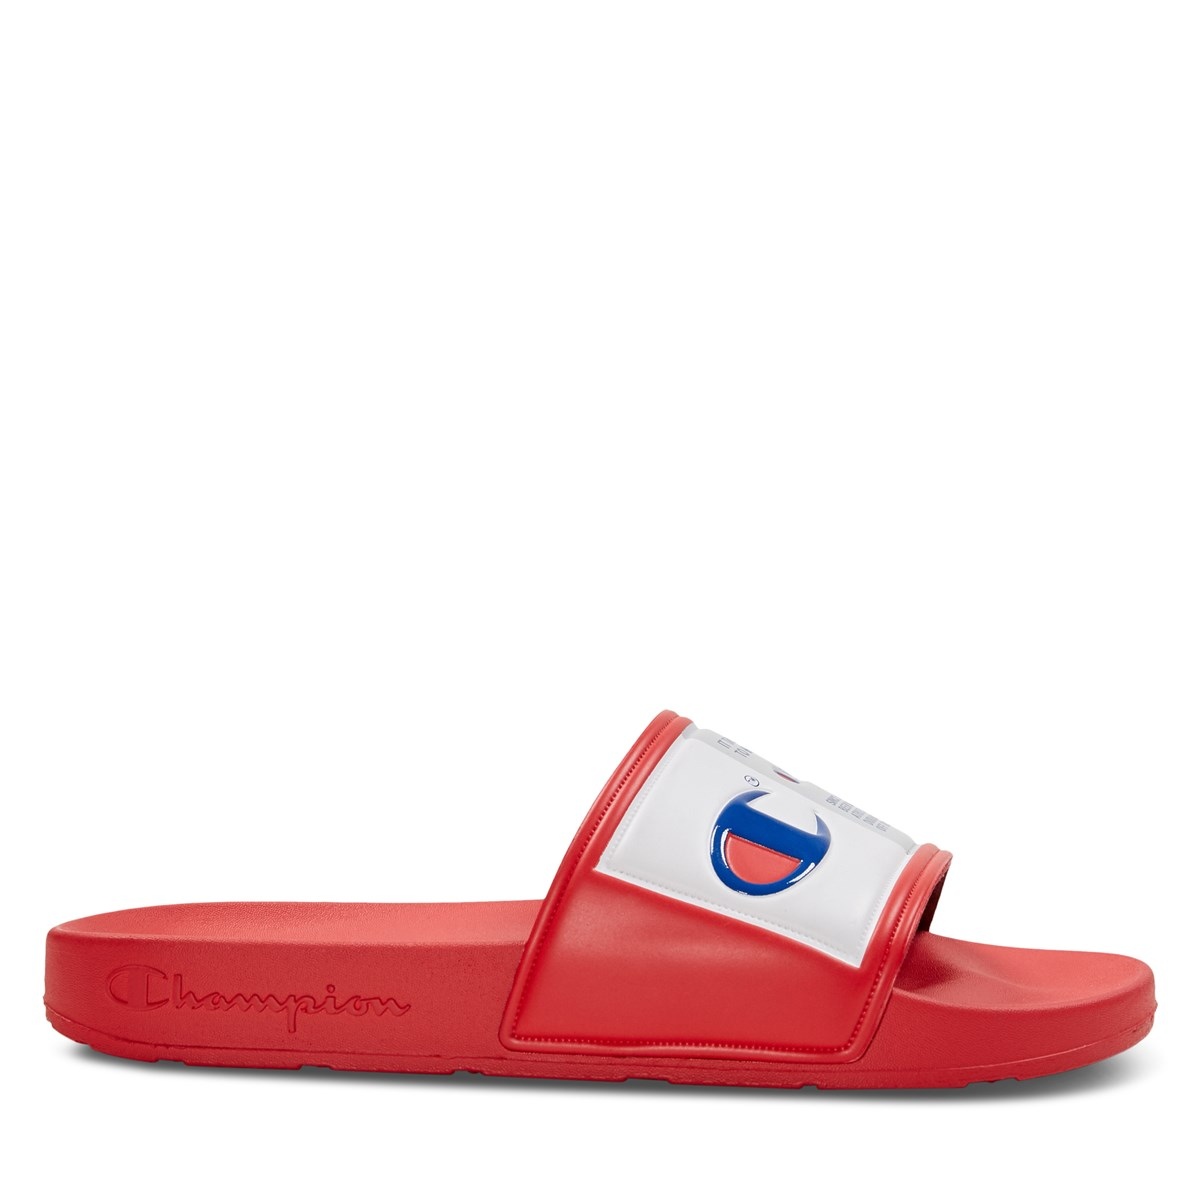 Women's IPO Jock Slides in Red